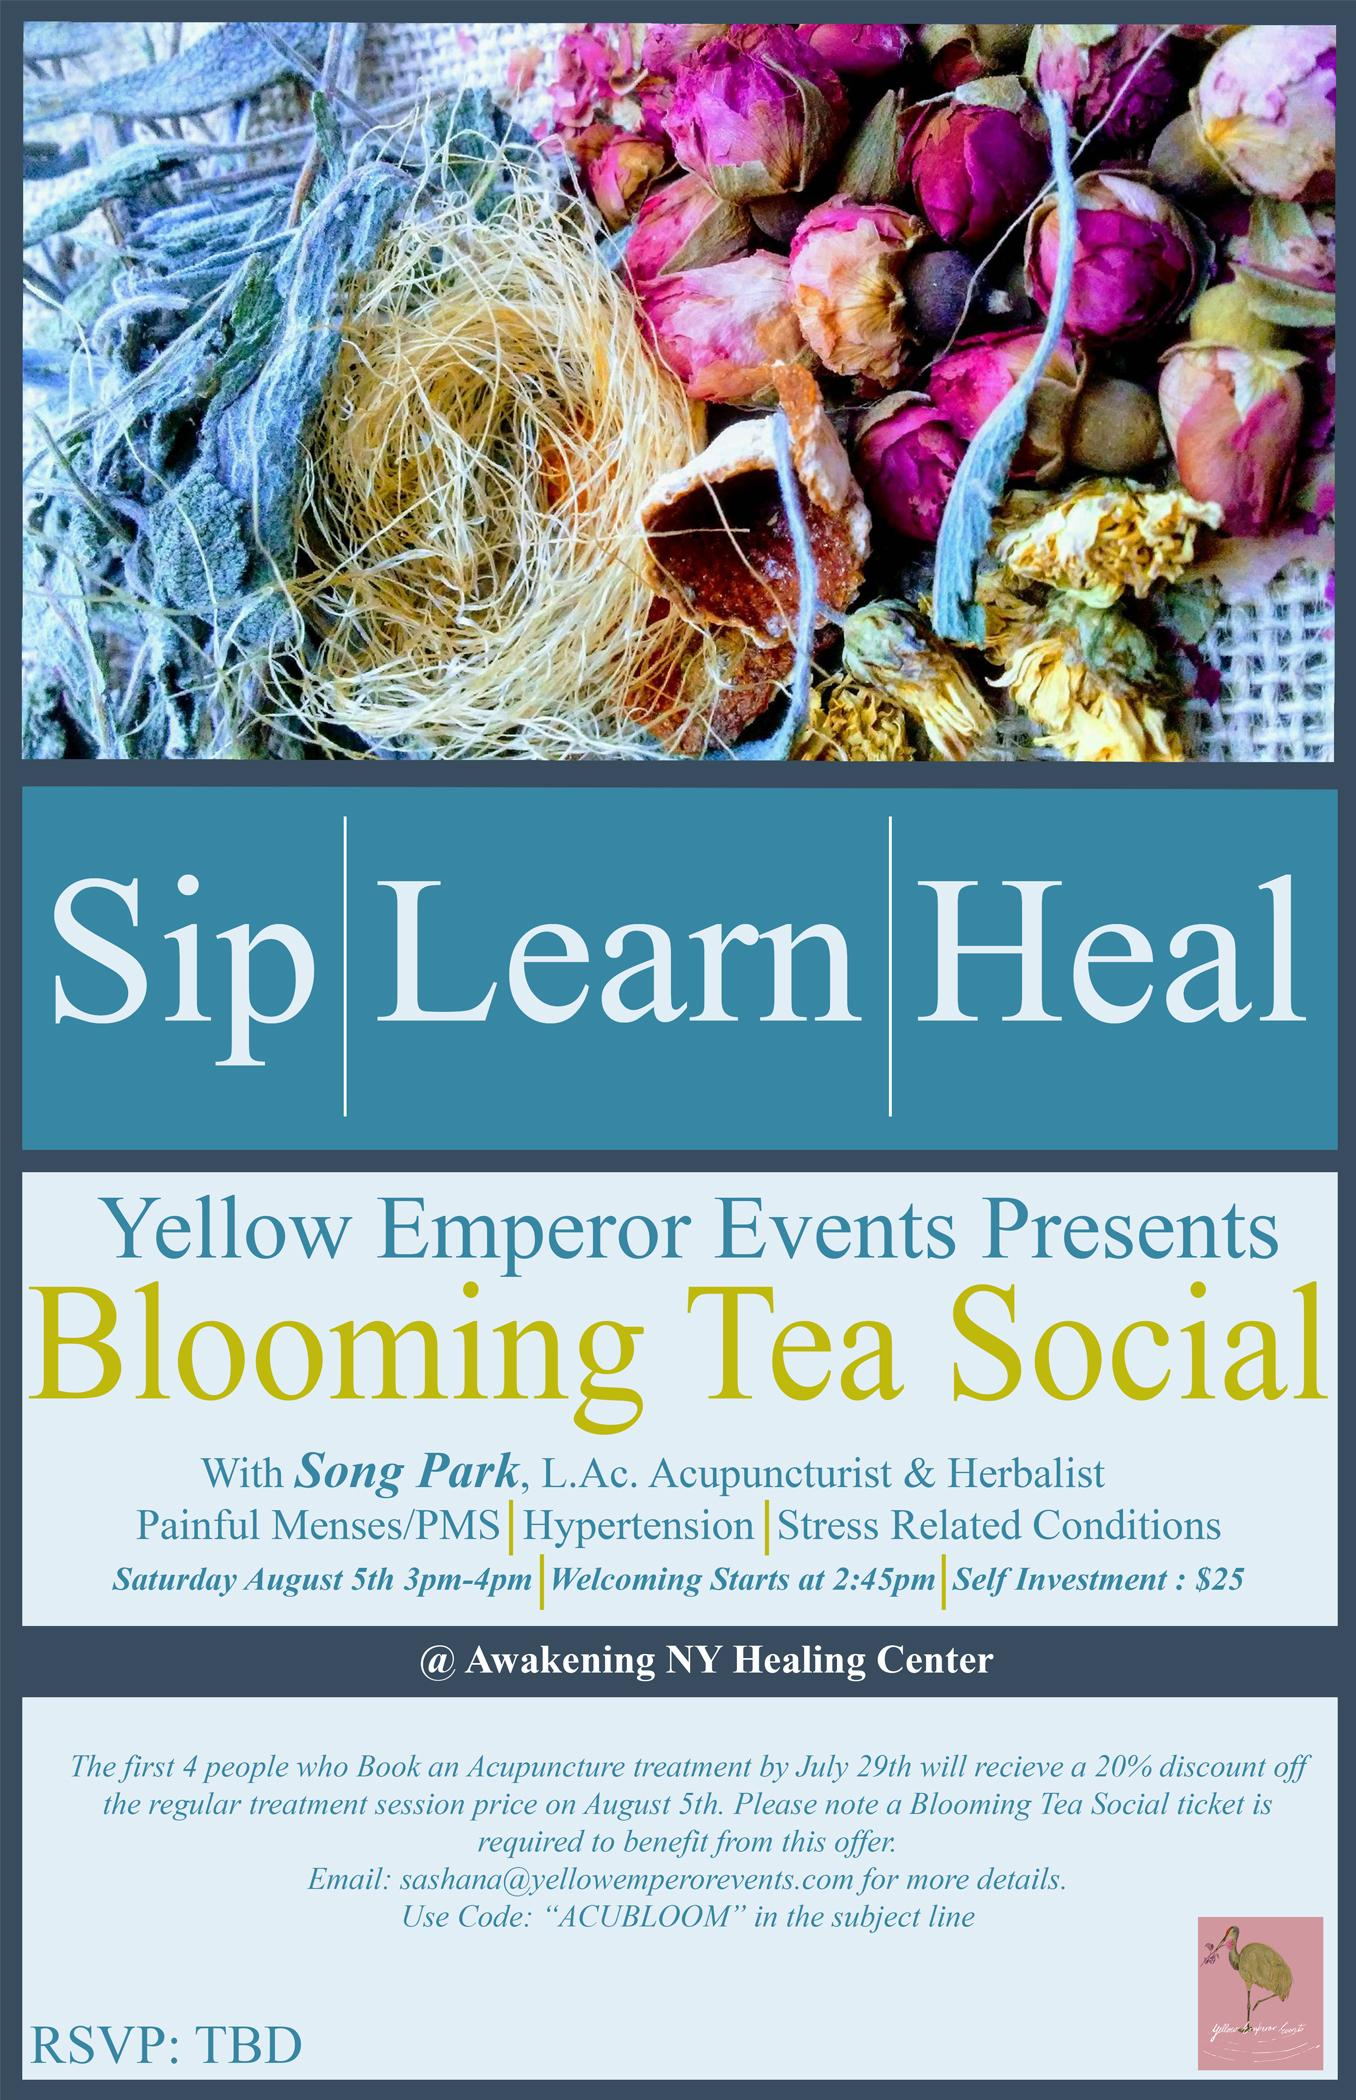 ::Blooming Tea Social:: Saturday Aug. 5th, 3p